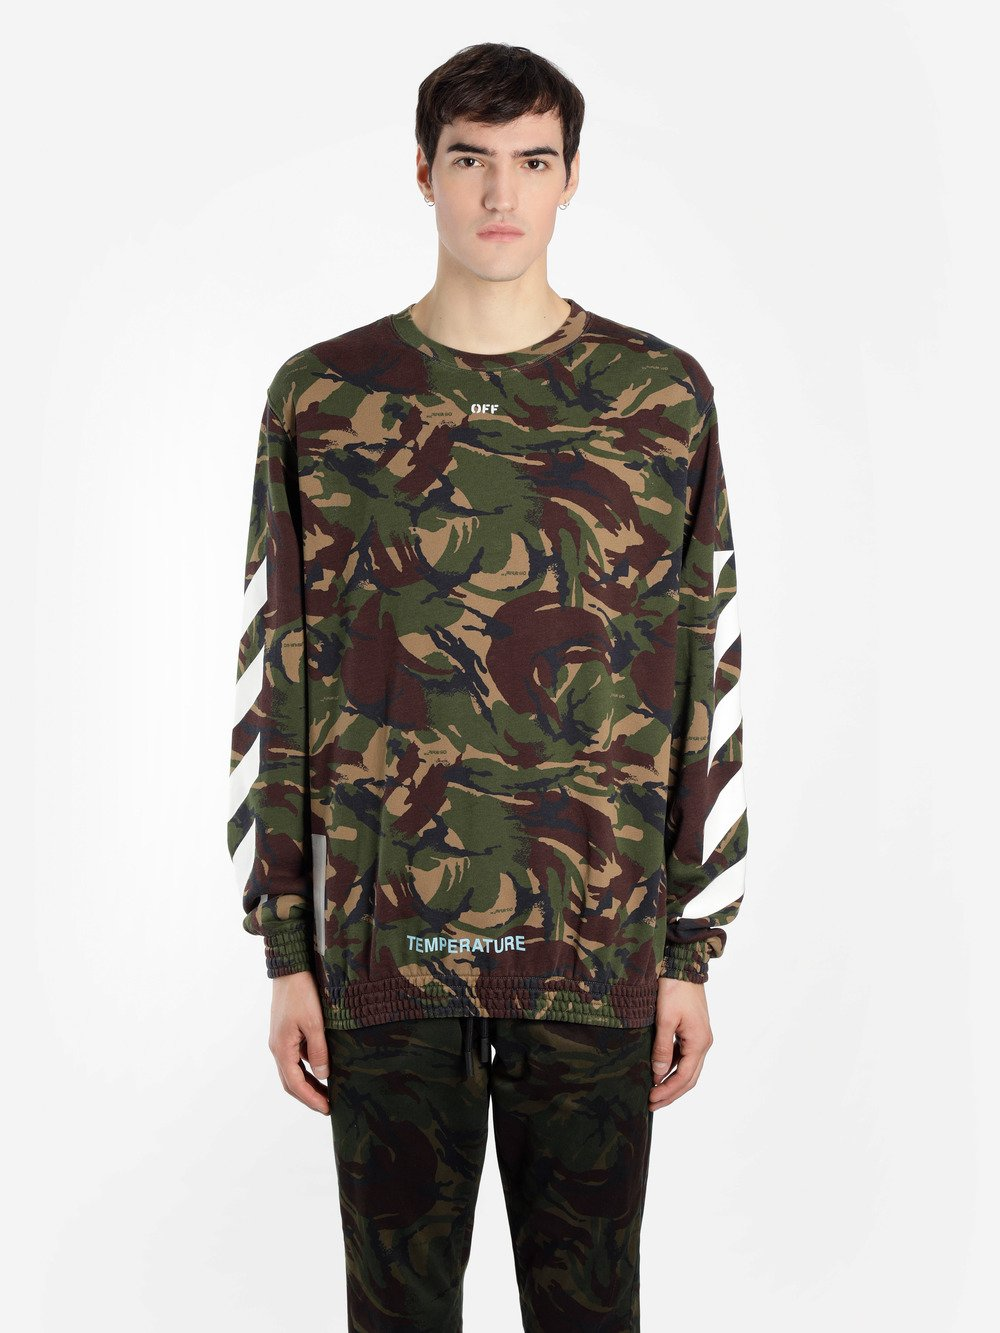 Off White Off White Co Virgil Abloh Mens Green Camouflage Crewneck